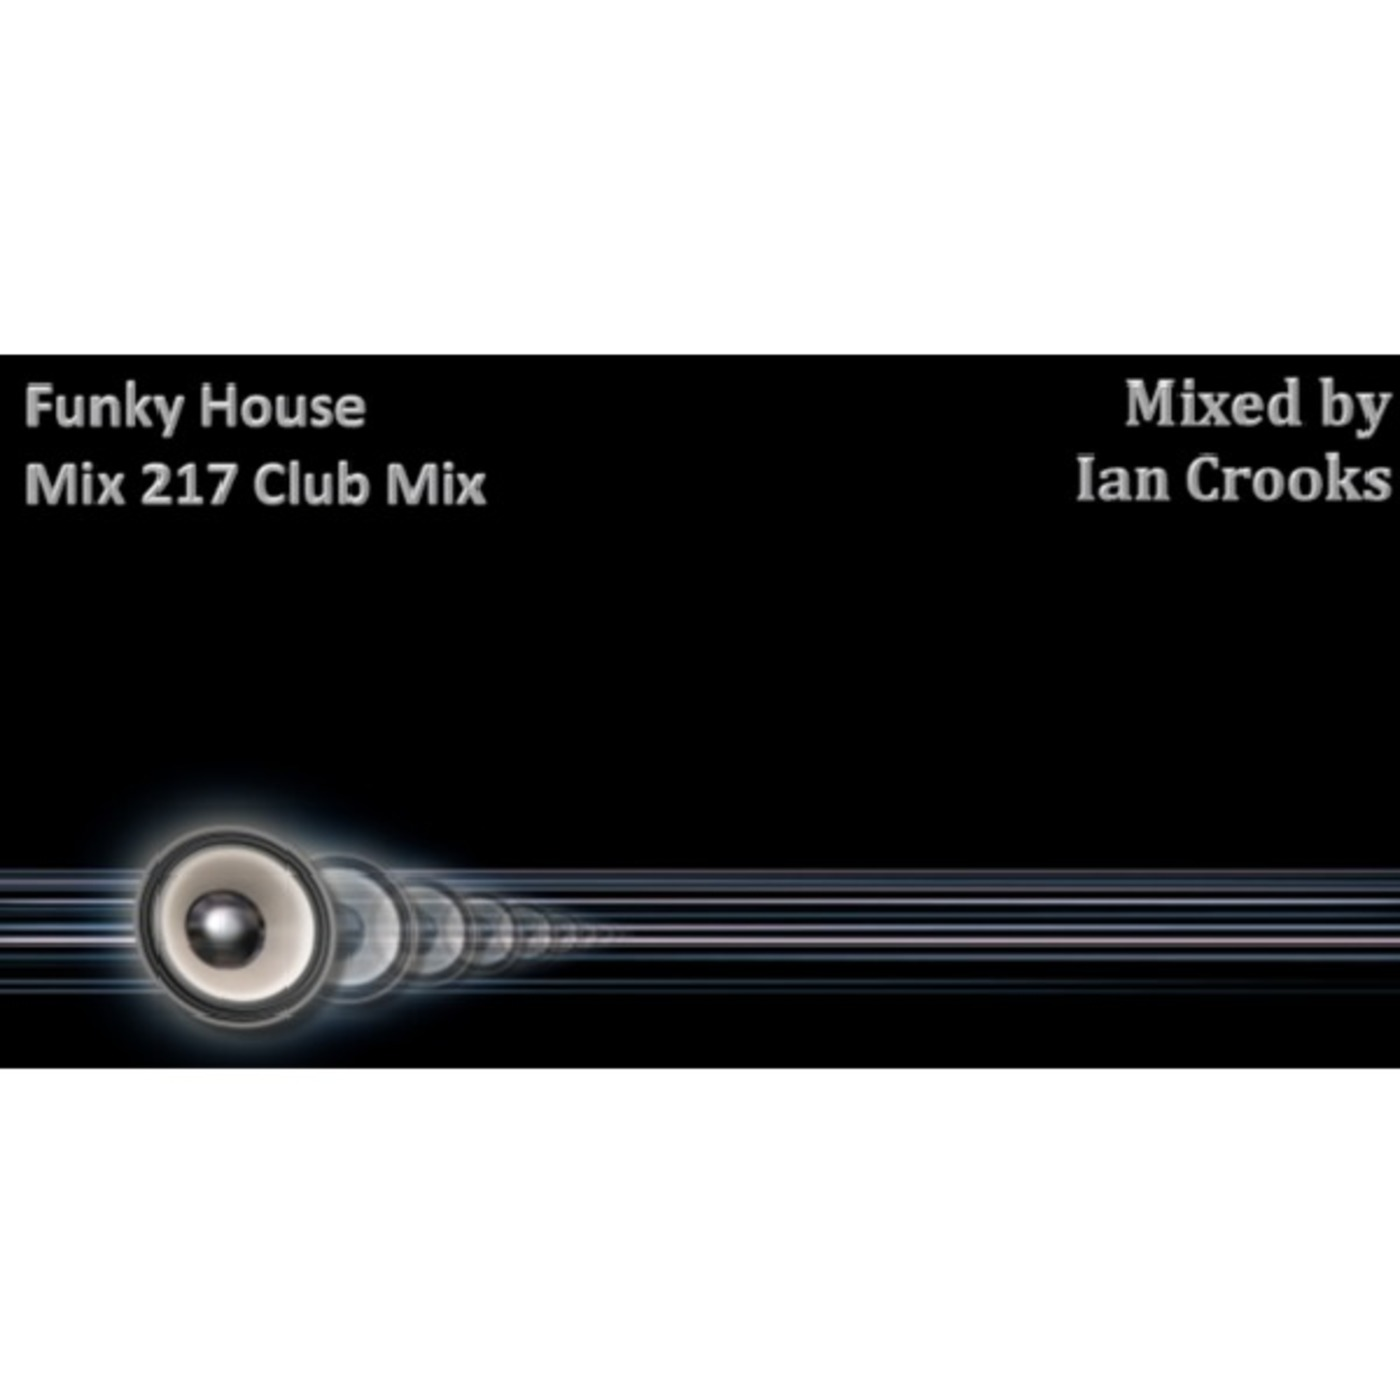 Funky house mix 217 club mix funky house mixes podcast for Funky house tunes